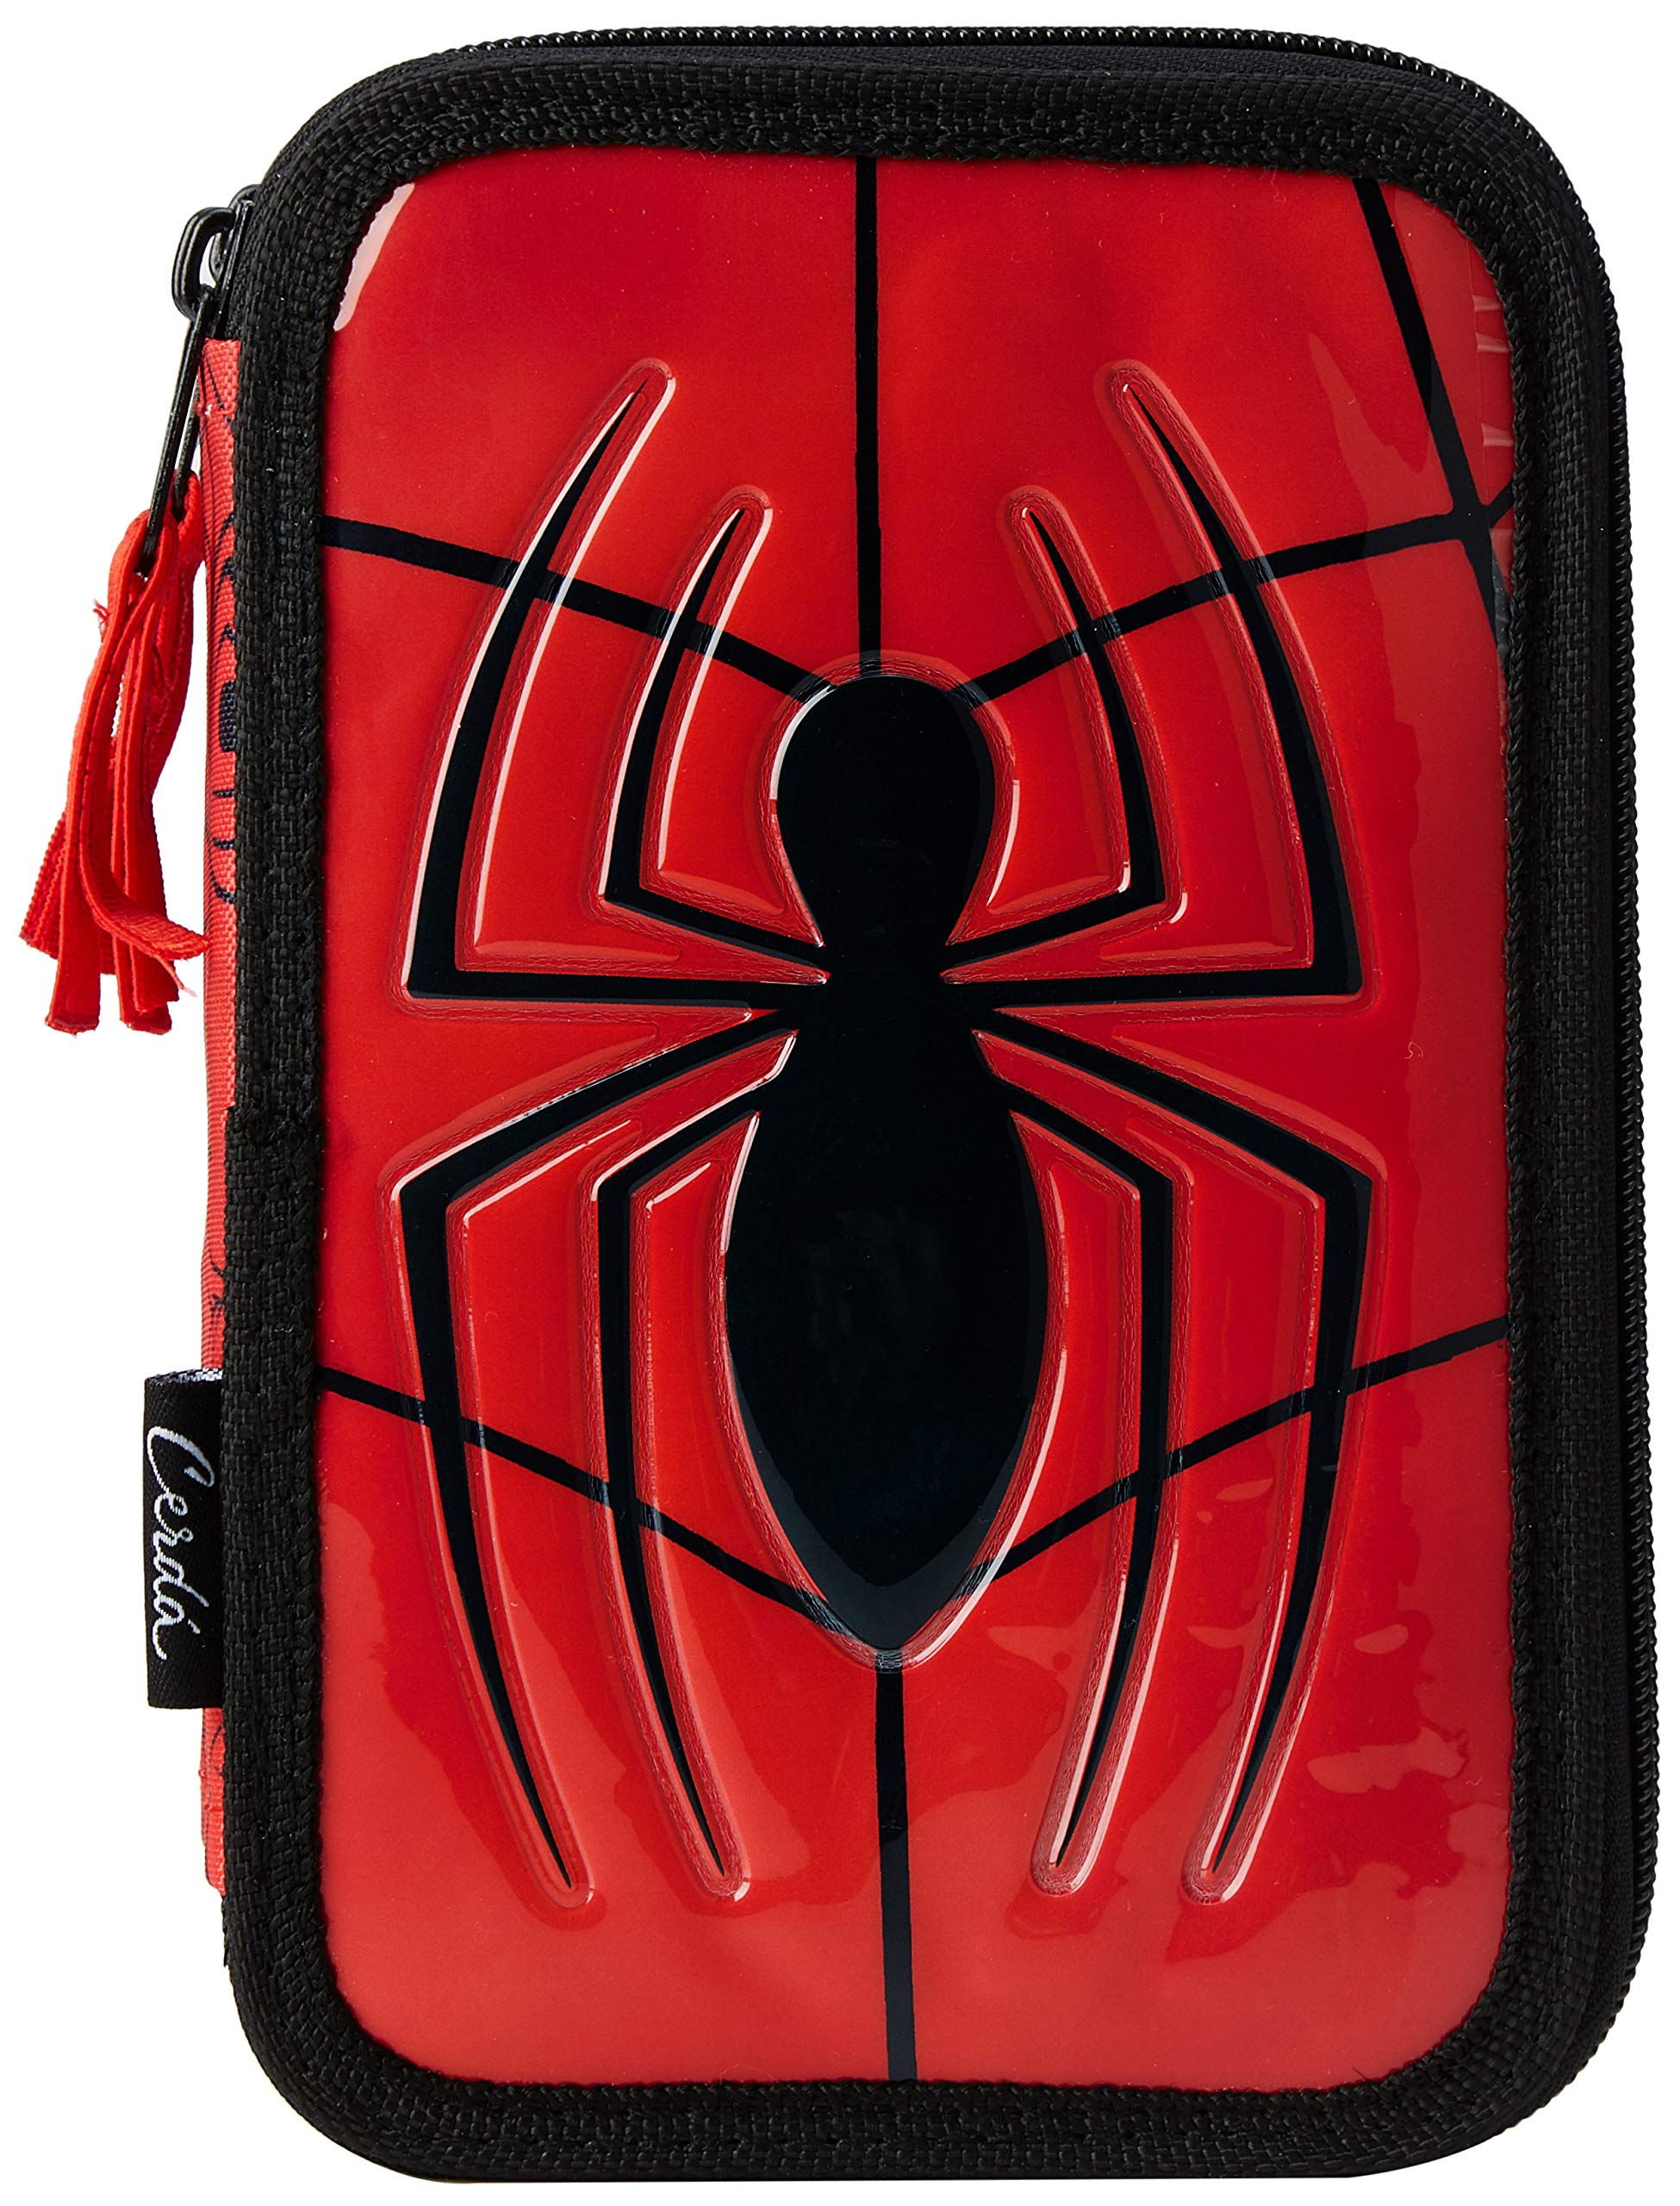 Spider-Man-2700000221 Spiderman Plumier, Multicolor, 19 cm (Artesanía Cerdá CD-27-0221)